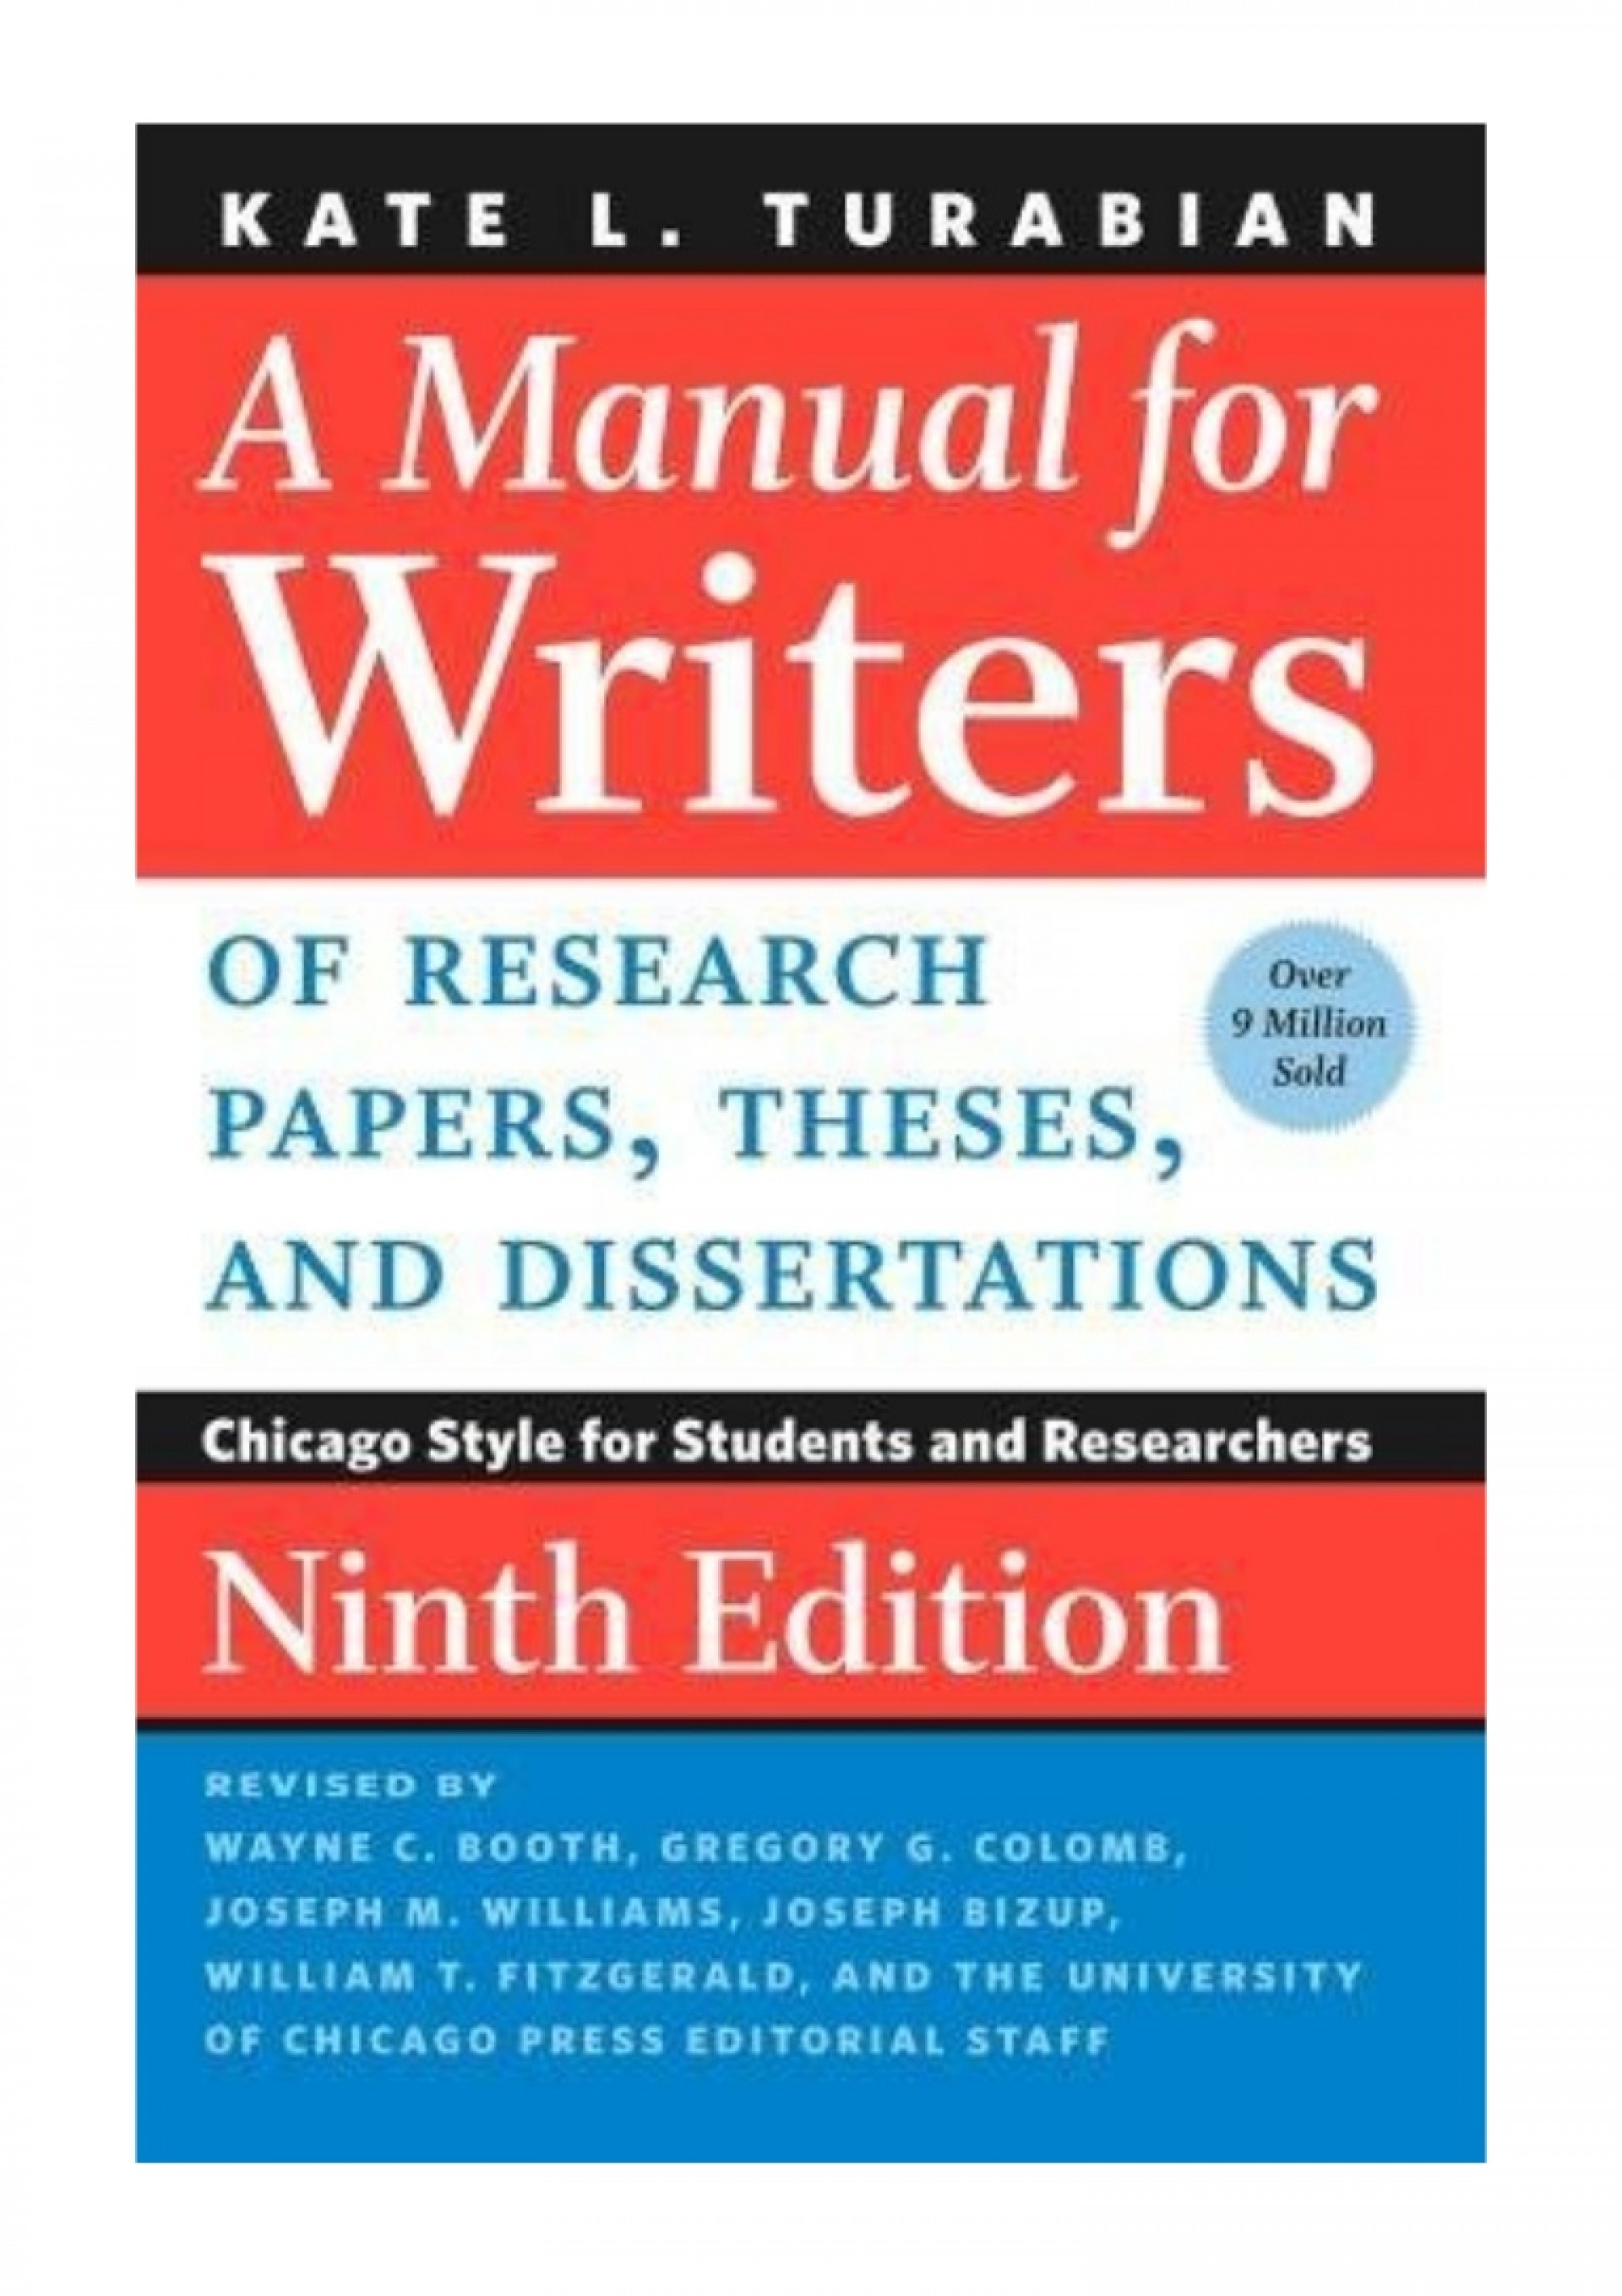 010 Manual For Writers Of Research Papers Theses And Dissertations Paper 022643057x Amanualforwritersofresearchpapersthesesanddissertationsnintheditionbykatel Thumbnail Magnificent A Amazon 9th Edition Pdf 8th 13 1920